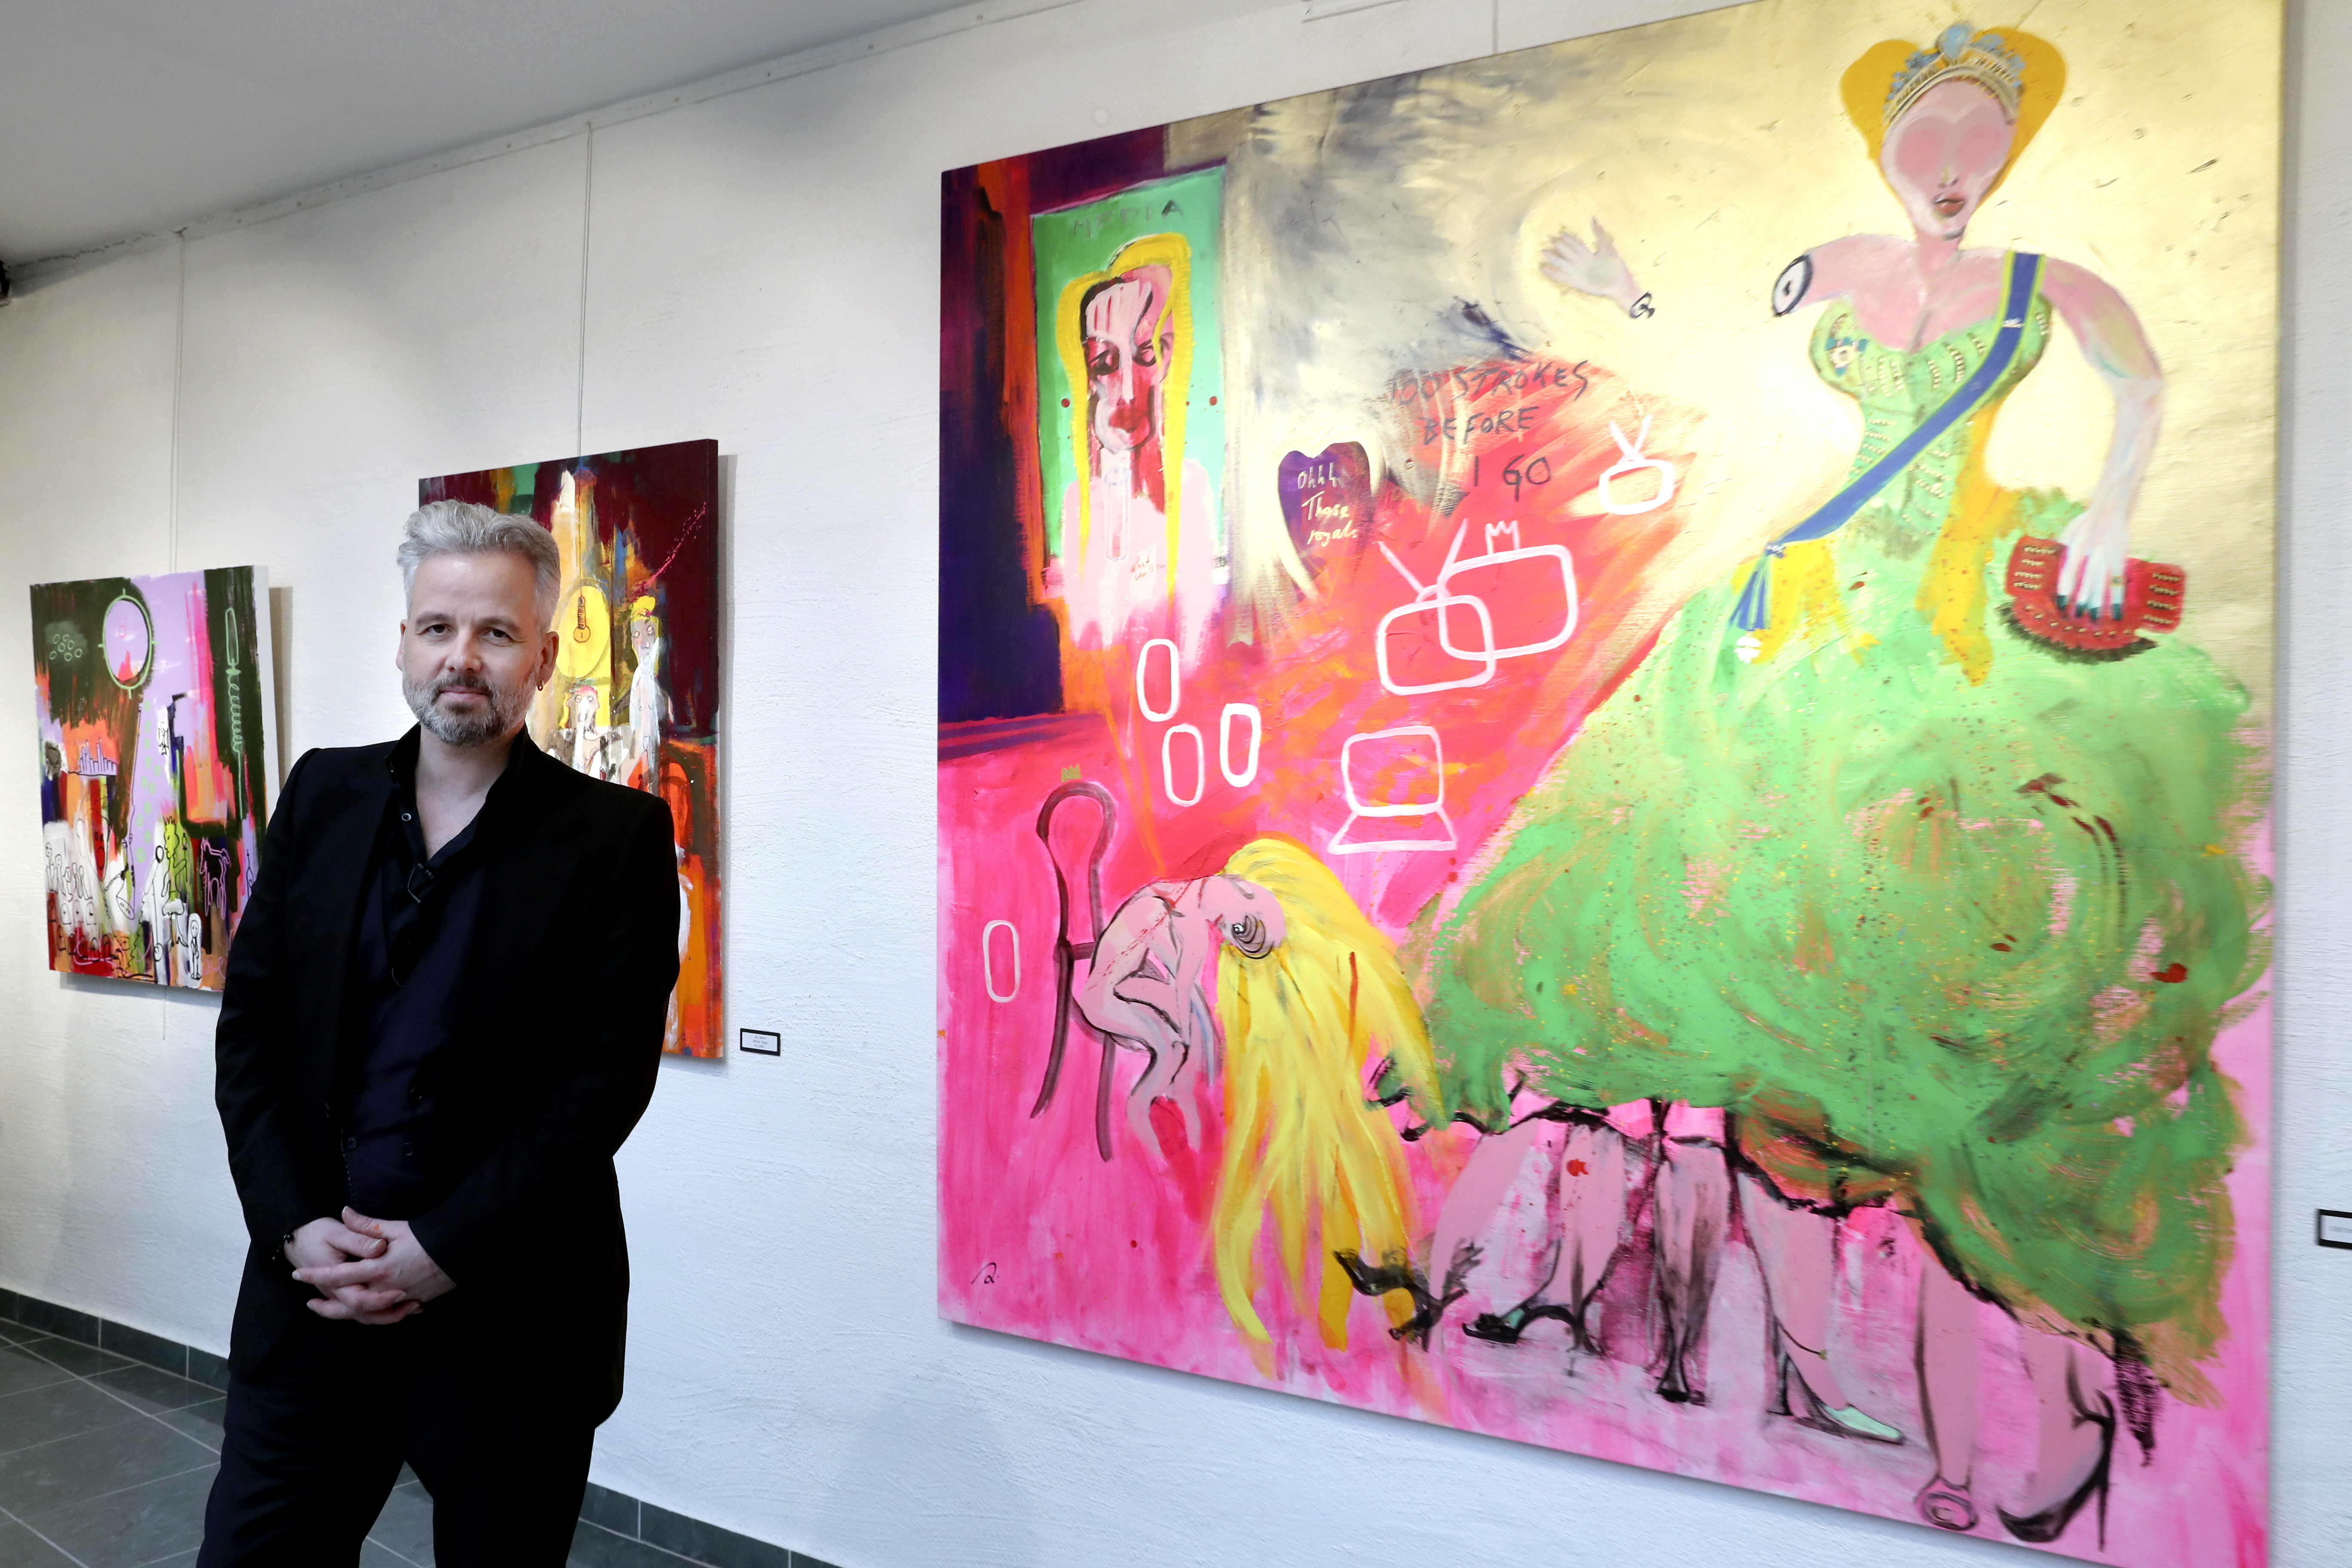 """Ari Behn poses for the media next to the work """"100 strokes before I go"""" during an exhibition in Gallery Oddvar Olsen in Drammen, Norway, in 2017."""